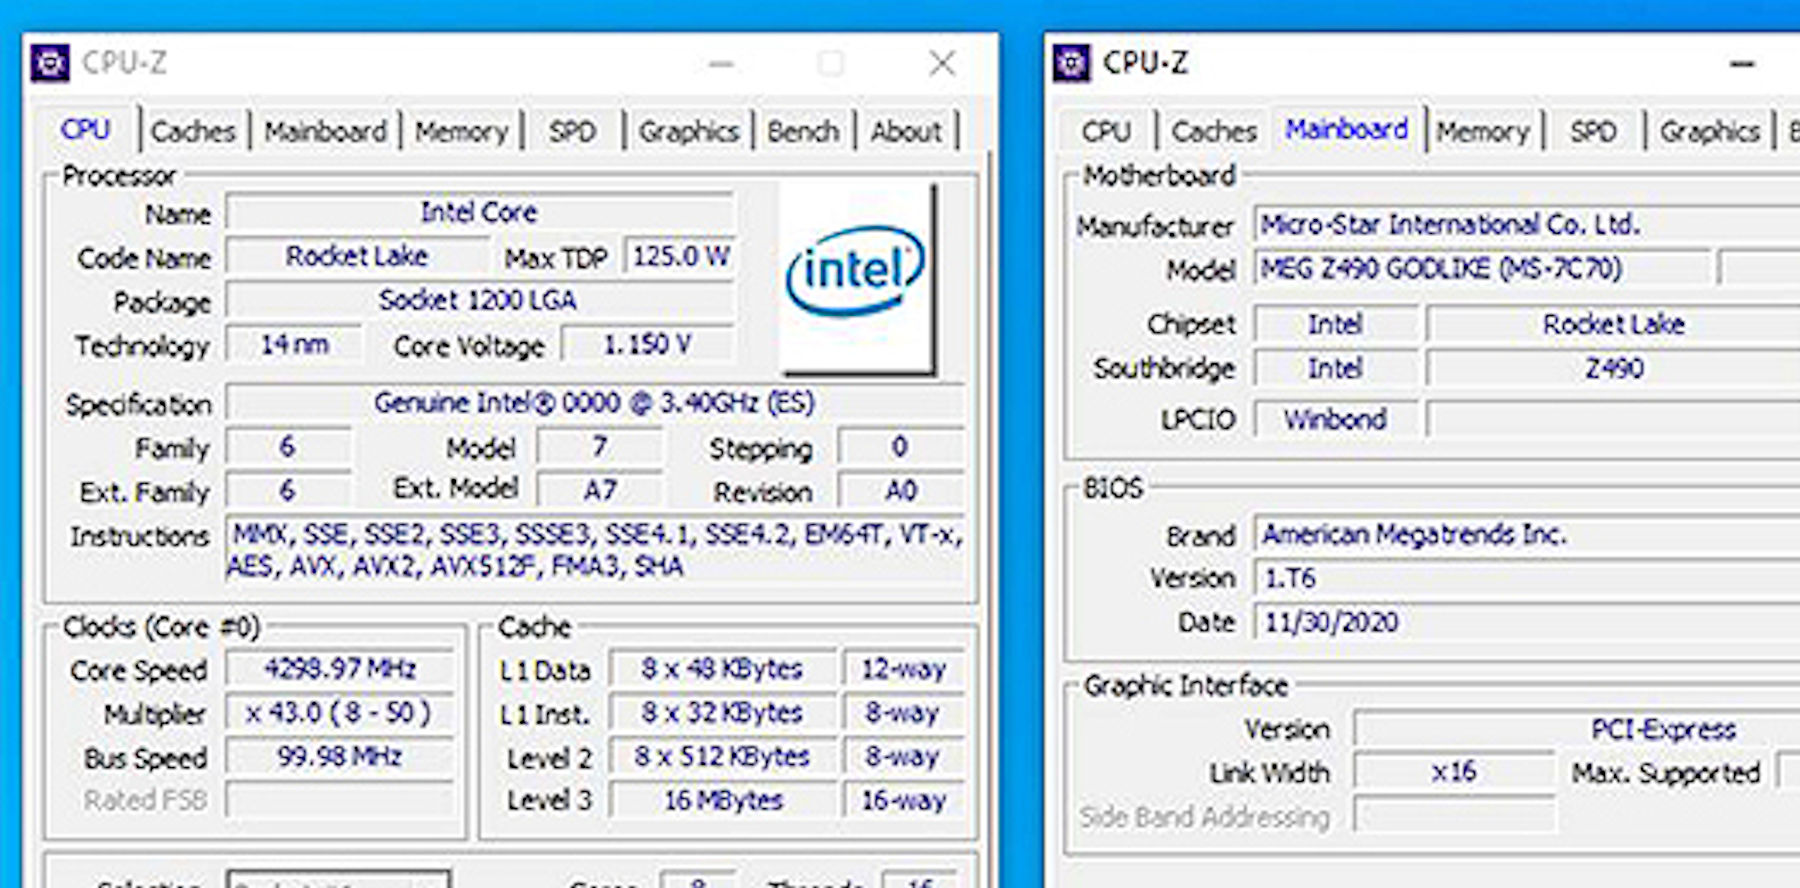 MSI mistakenly reveals 8-core/16-thread Intel Rocket Lake-S CPU-Z specificaitons – VideoCardz.com